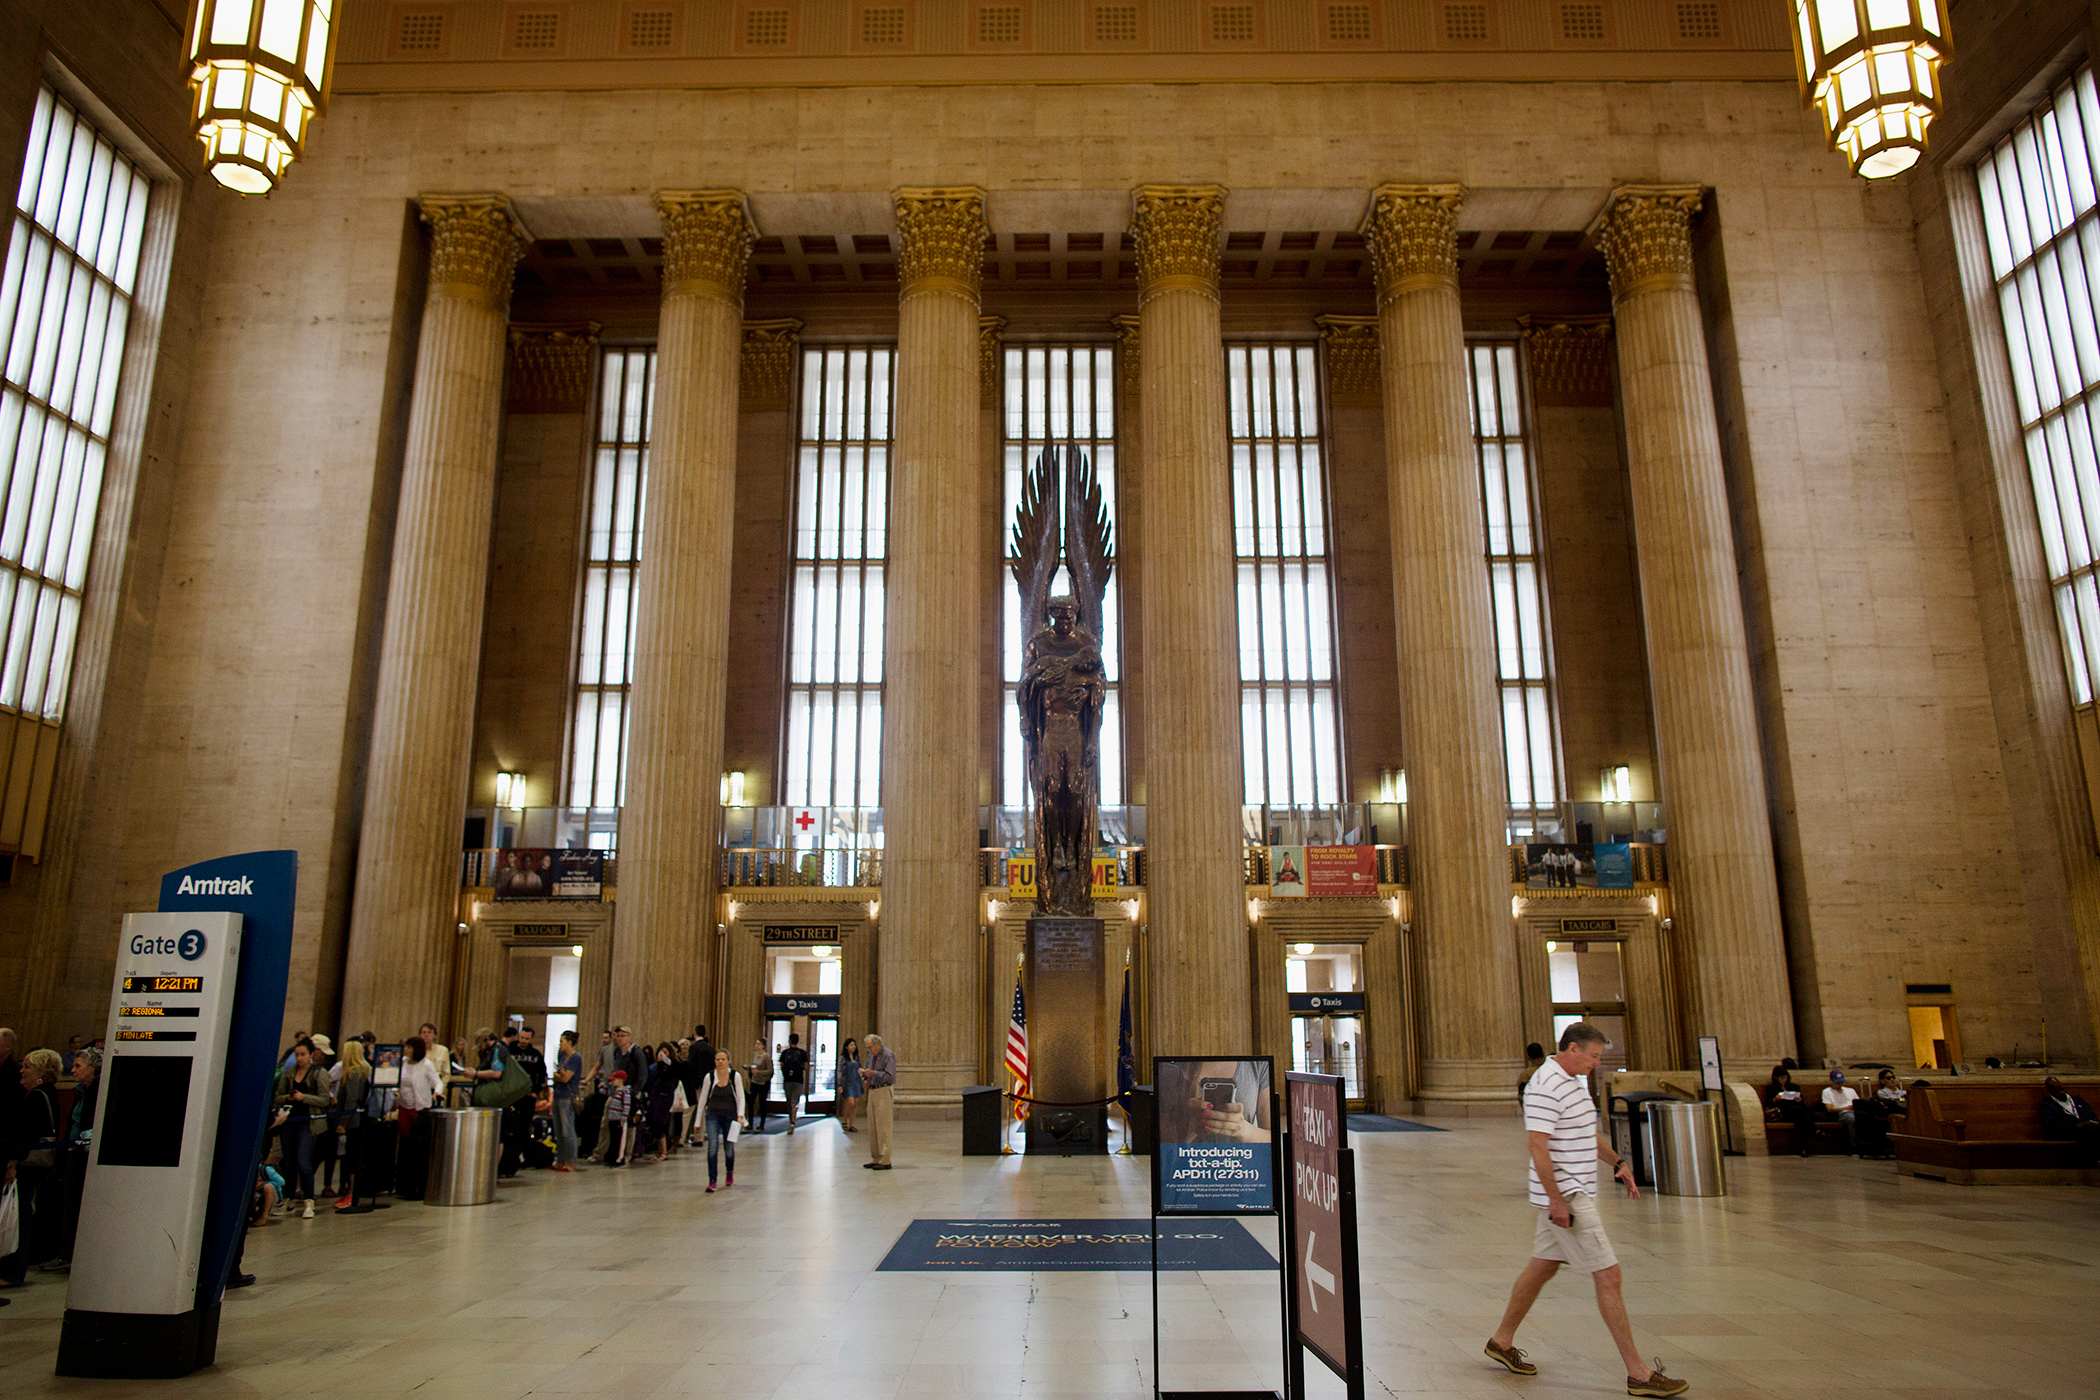 Travelers walk through the 30th Street train station in Philadelphia, Pennsylvania, U.S., on May 9, 2015.